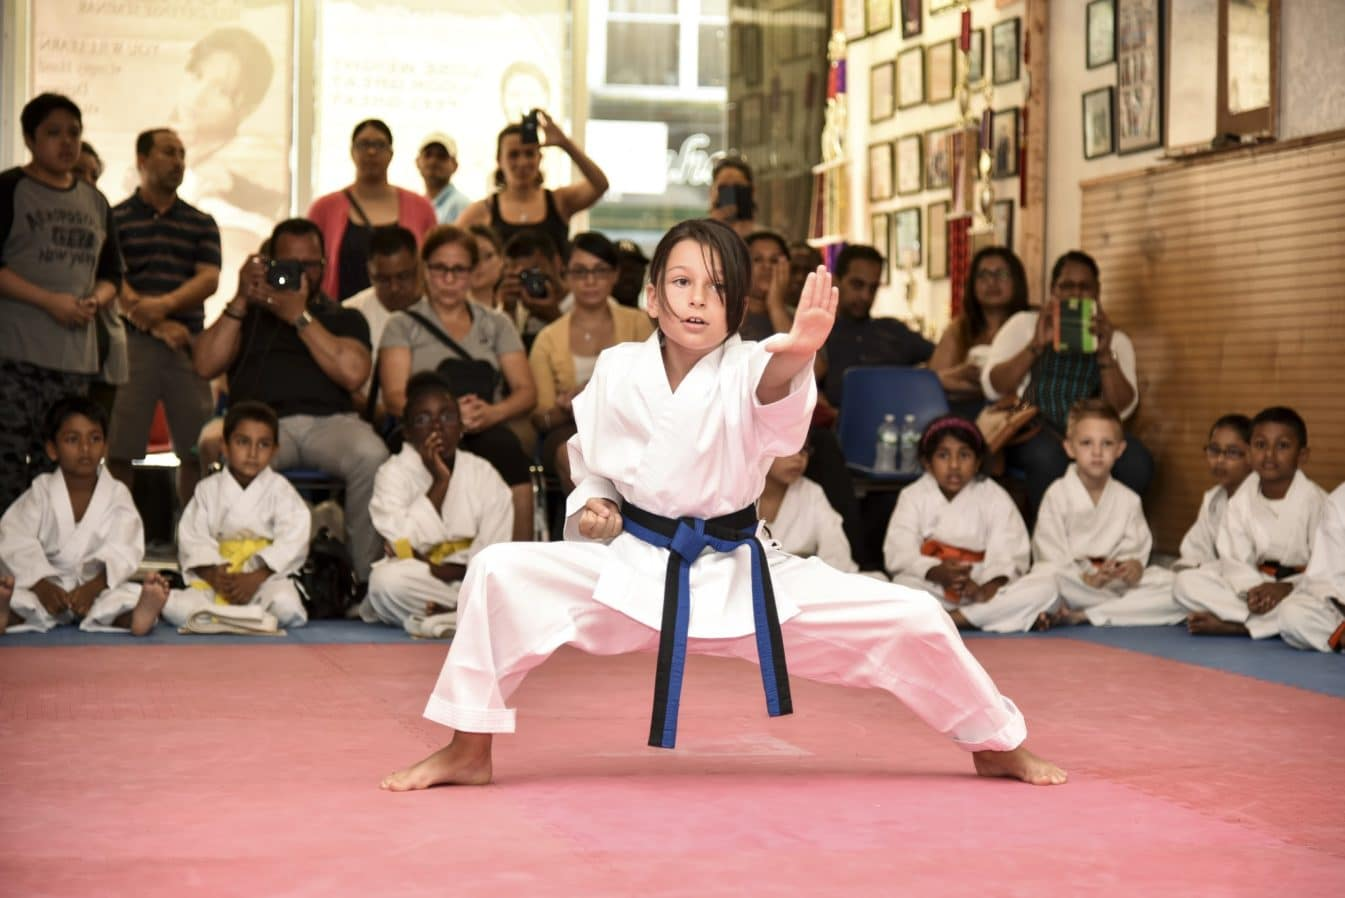 Karate Ceremony Demonstration at Born-2-Win Martial Arts